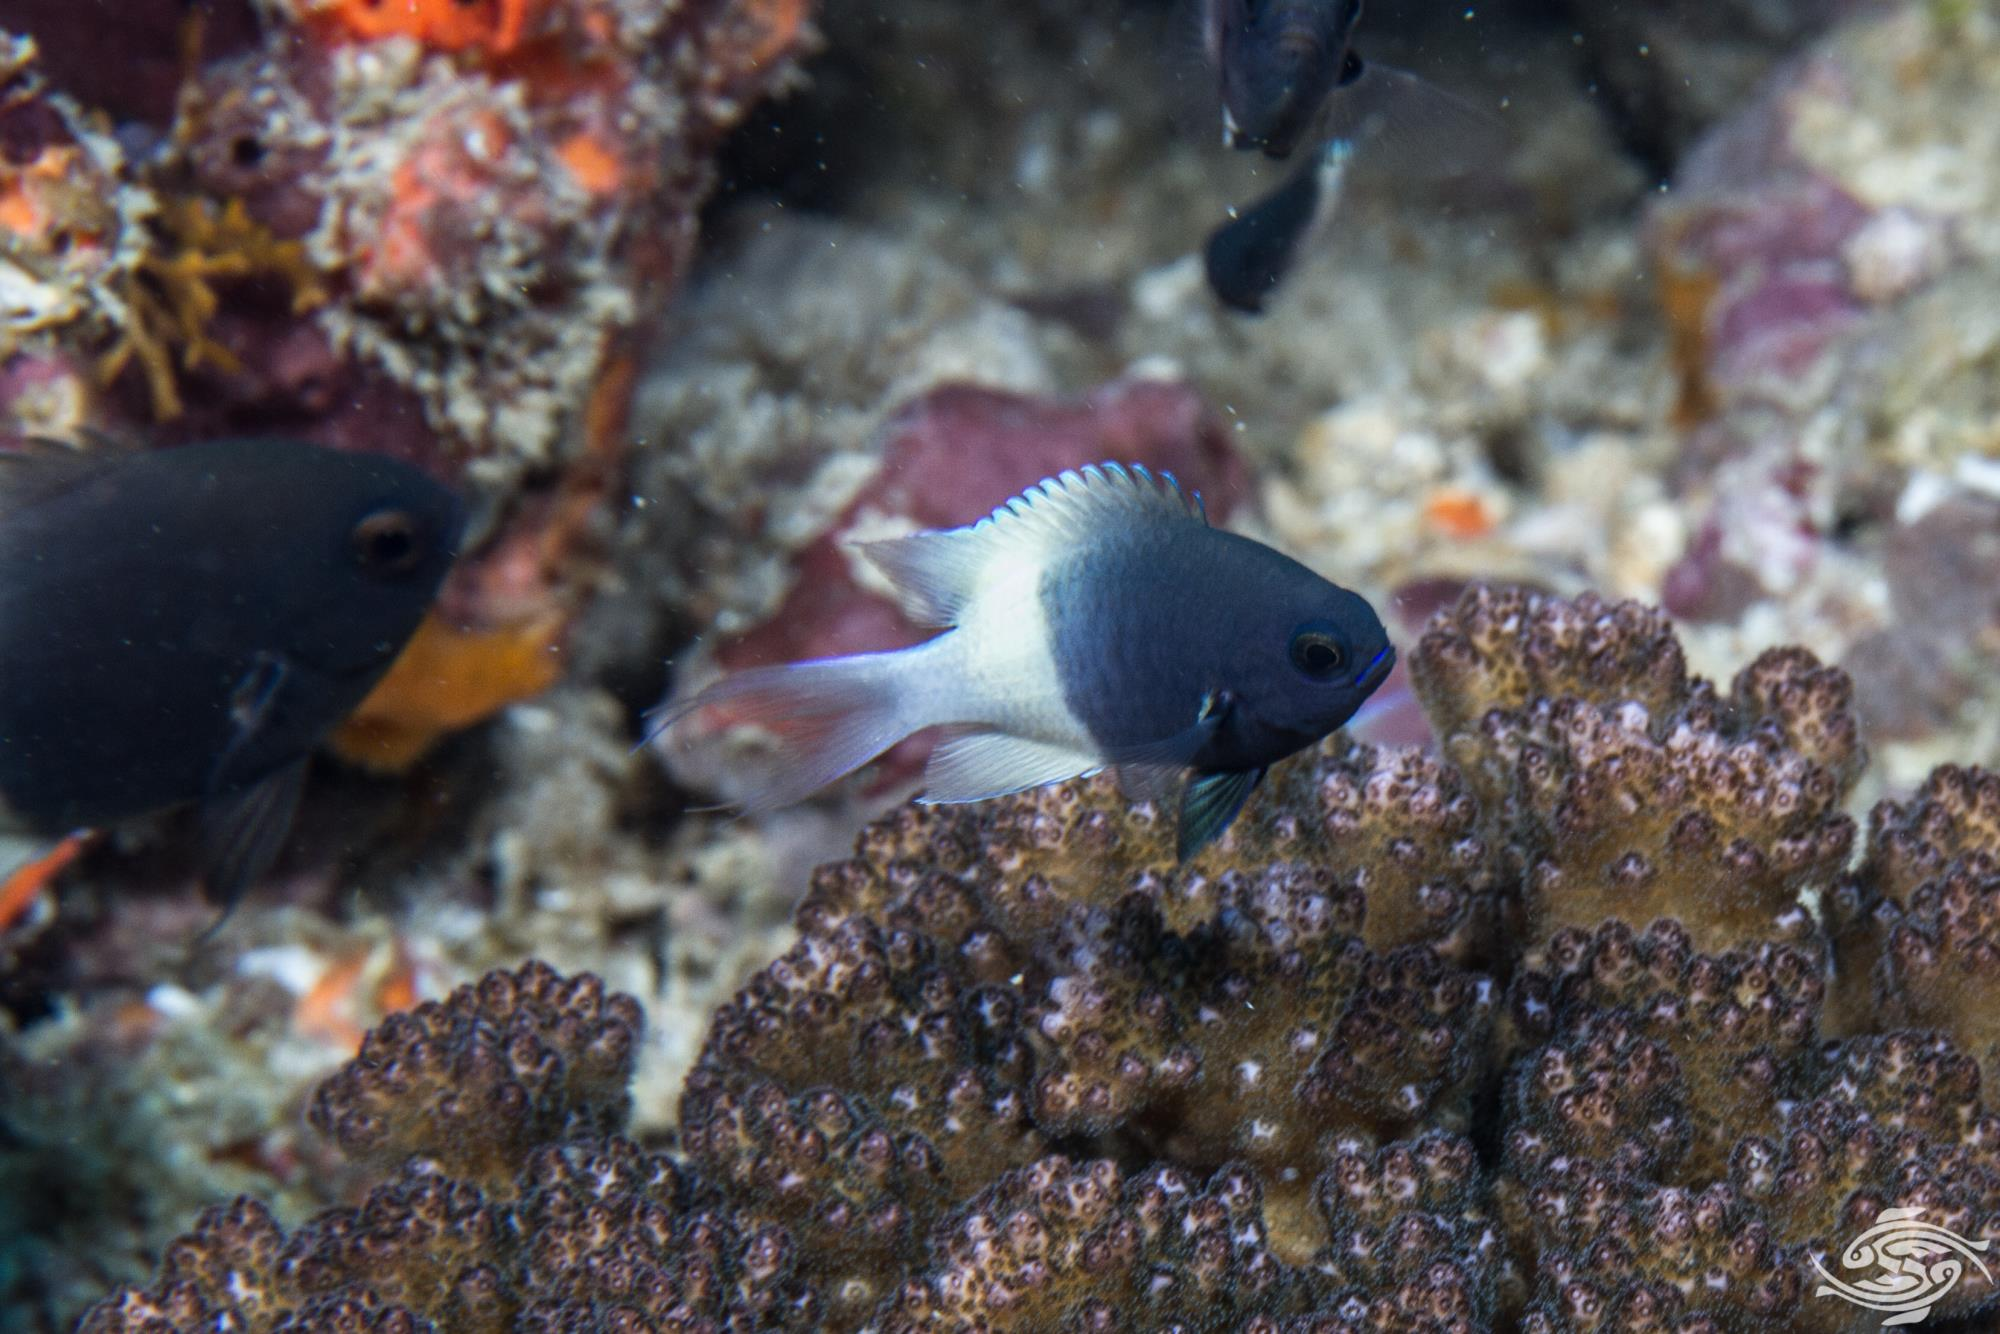 Chocolate Dip Damselfish, Chromis fieldi is also known as the Chocolate Dip Chromis, Two-tone Chromis and Two-tone Damselfish.